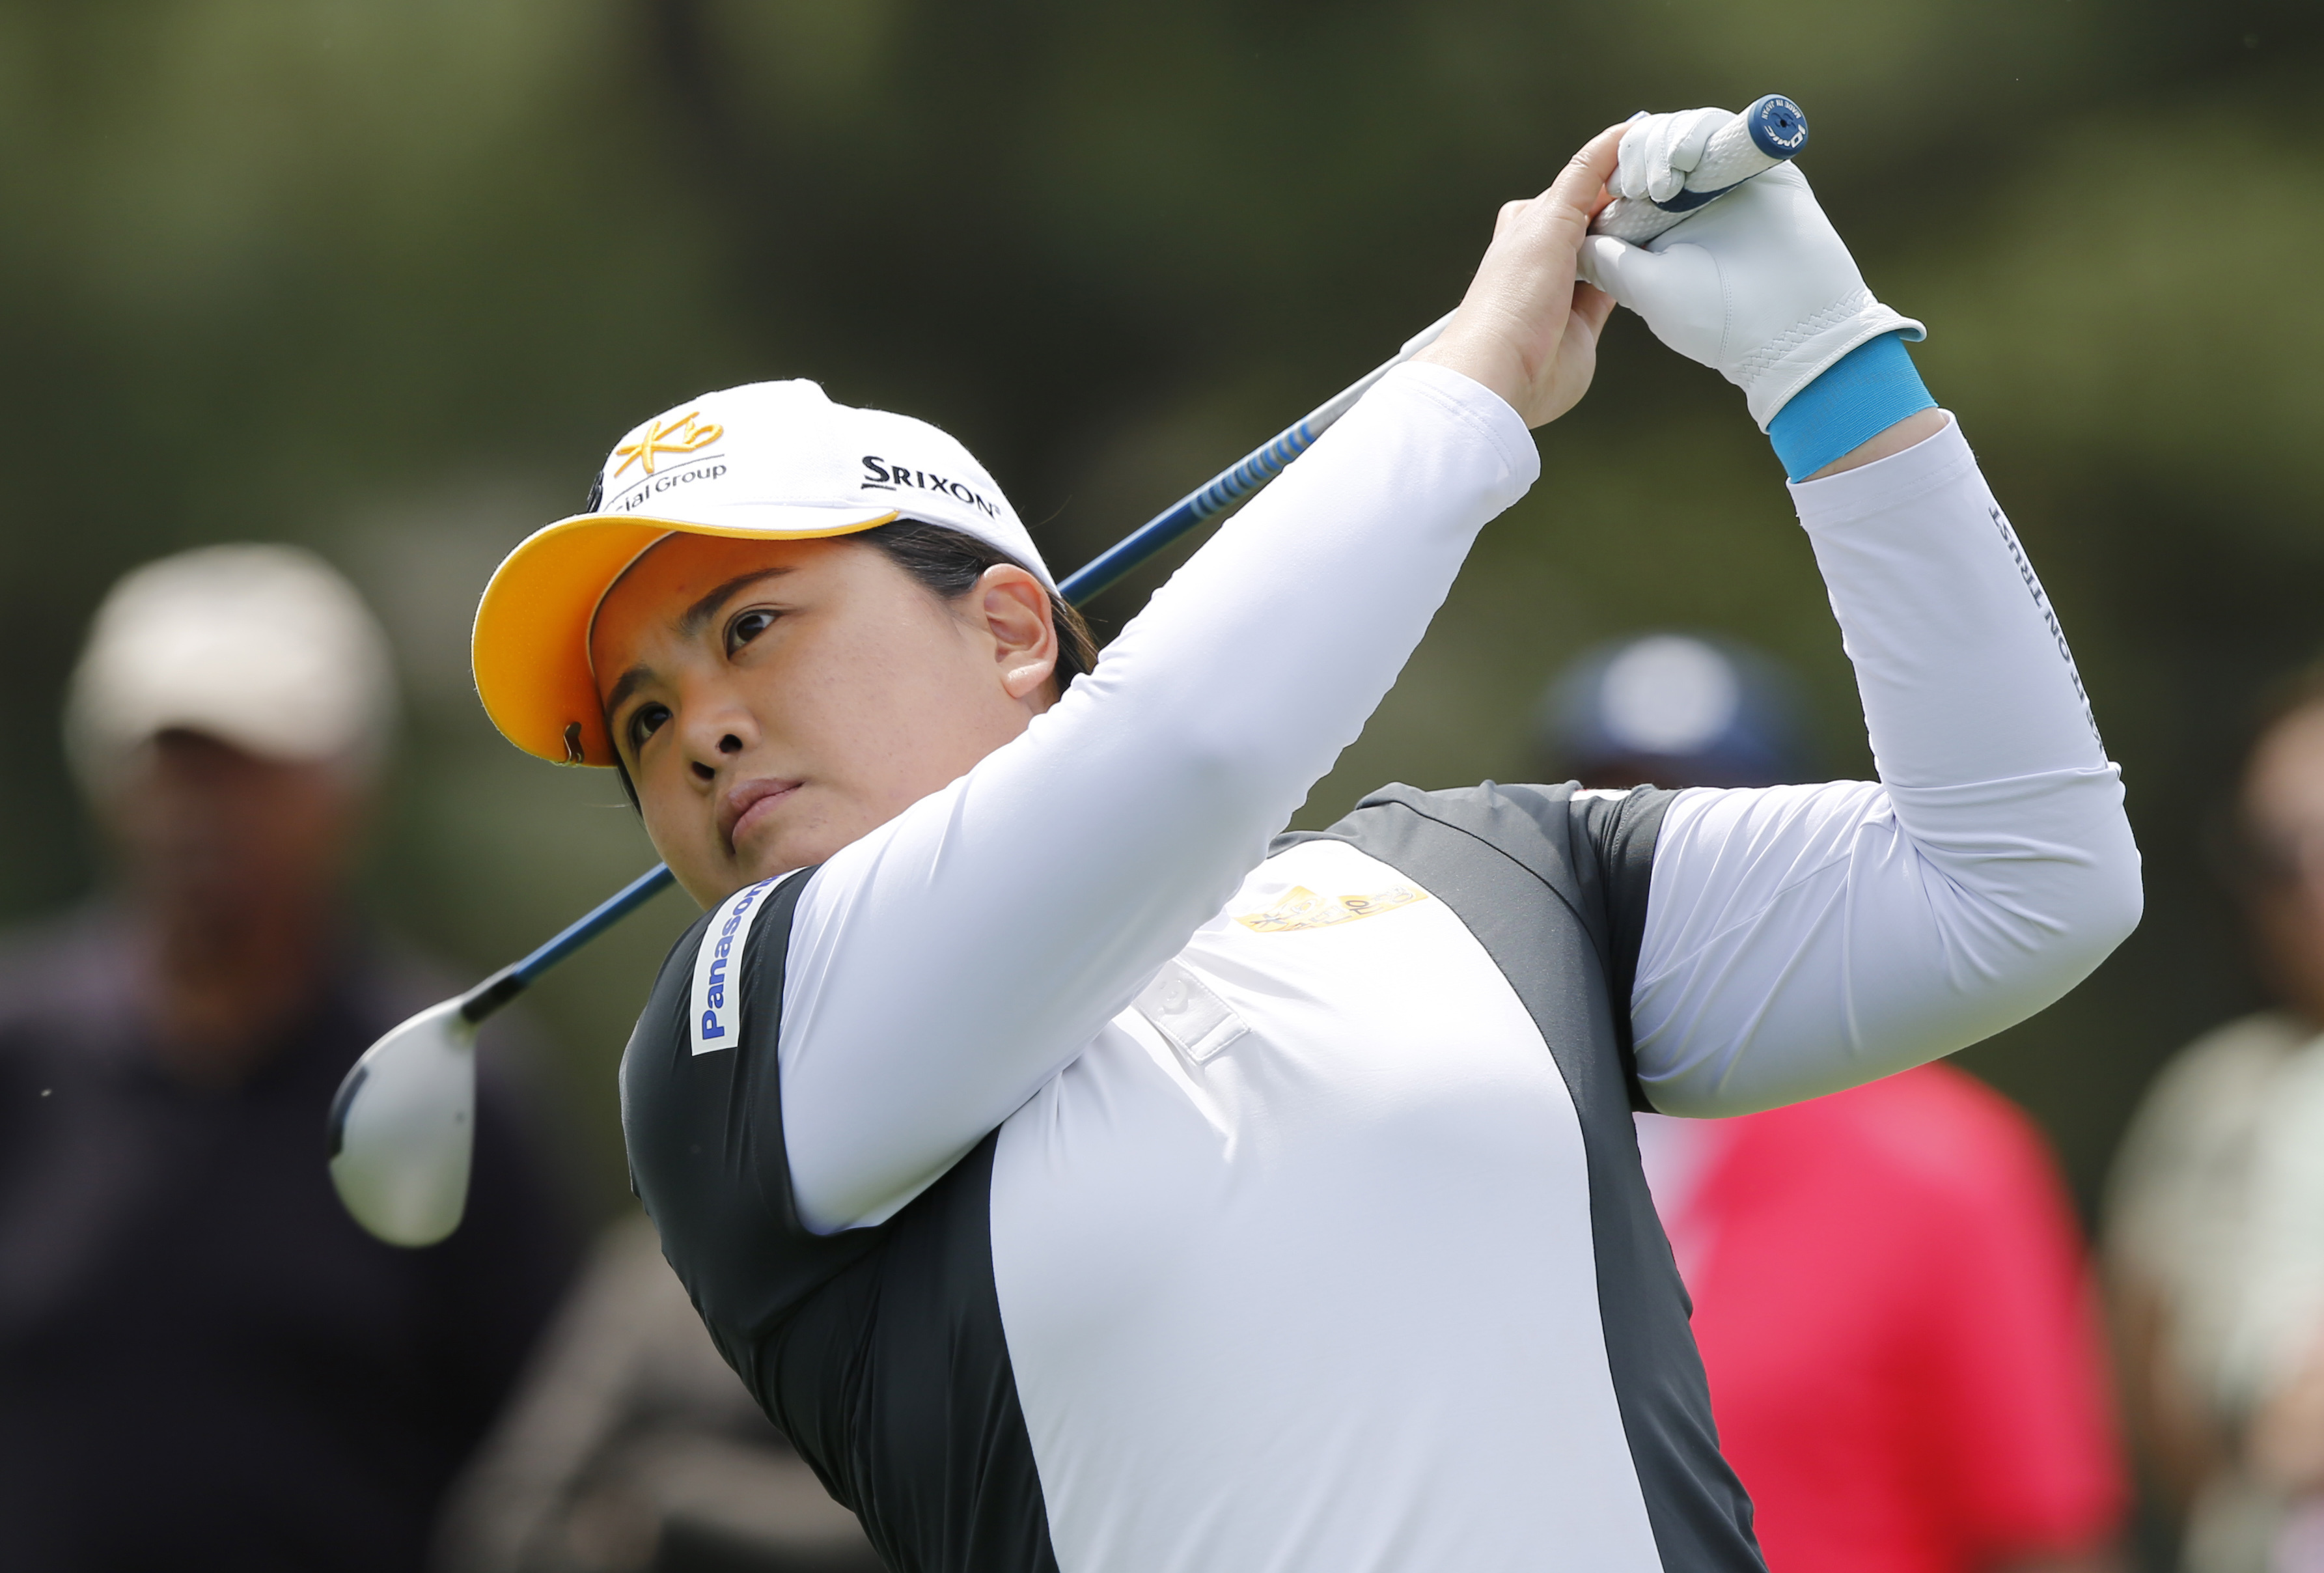 Inbee Park, of South Korea, watches her tee shot on the second tee during the first round of the Kingsmill Championship golf tournament at the Kingsmill Resort in Williamsburg, Va., Thursday, May 19, 2016. (AP Photo/Steve Helber)